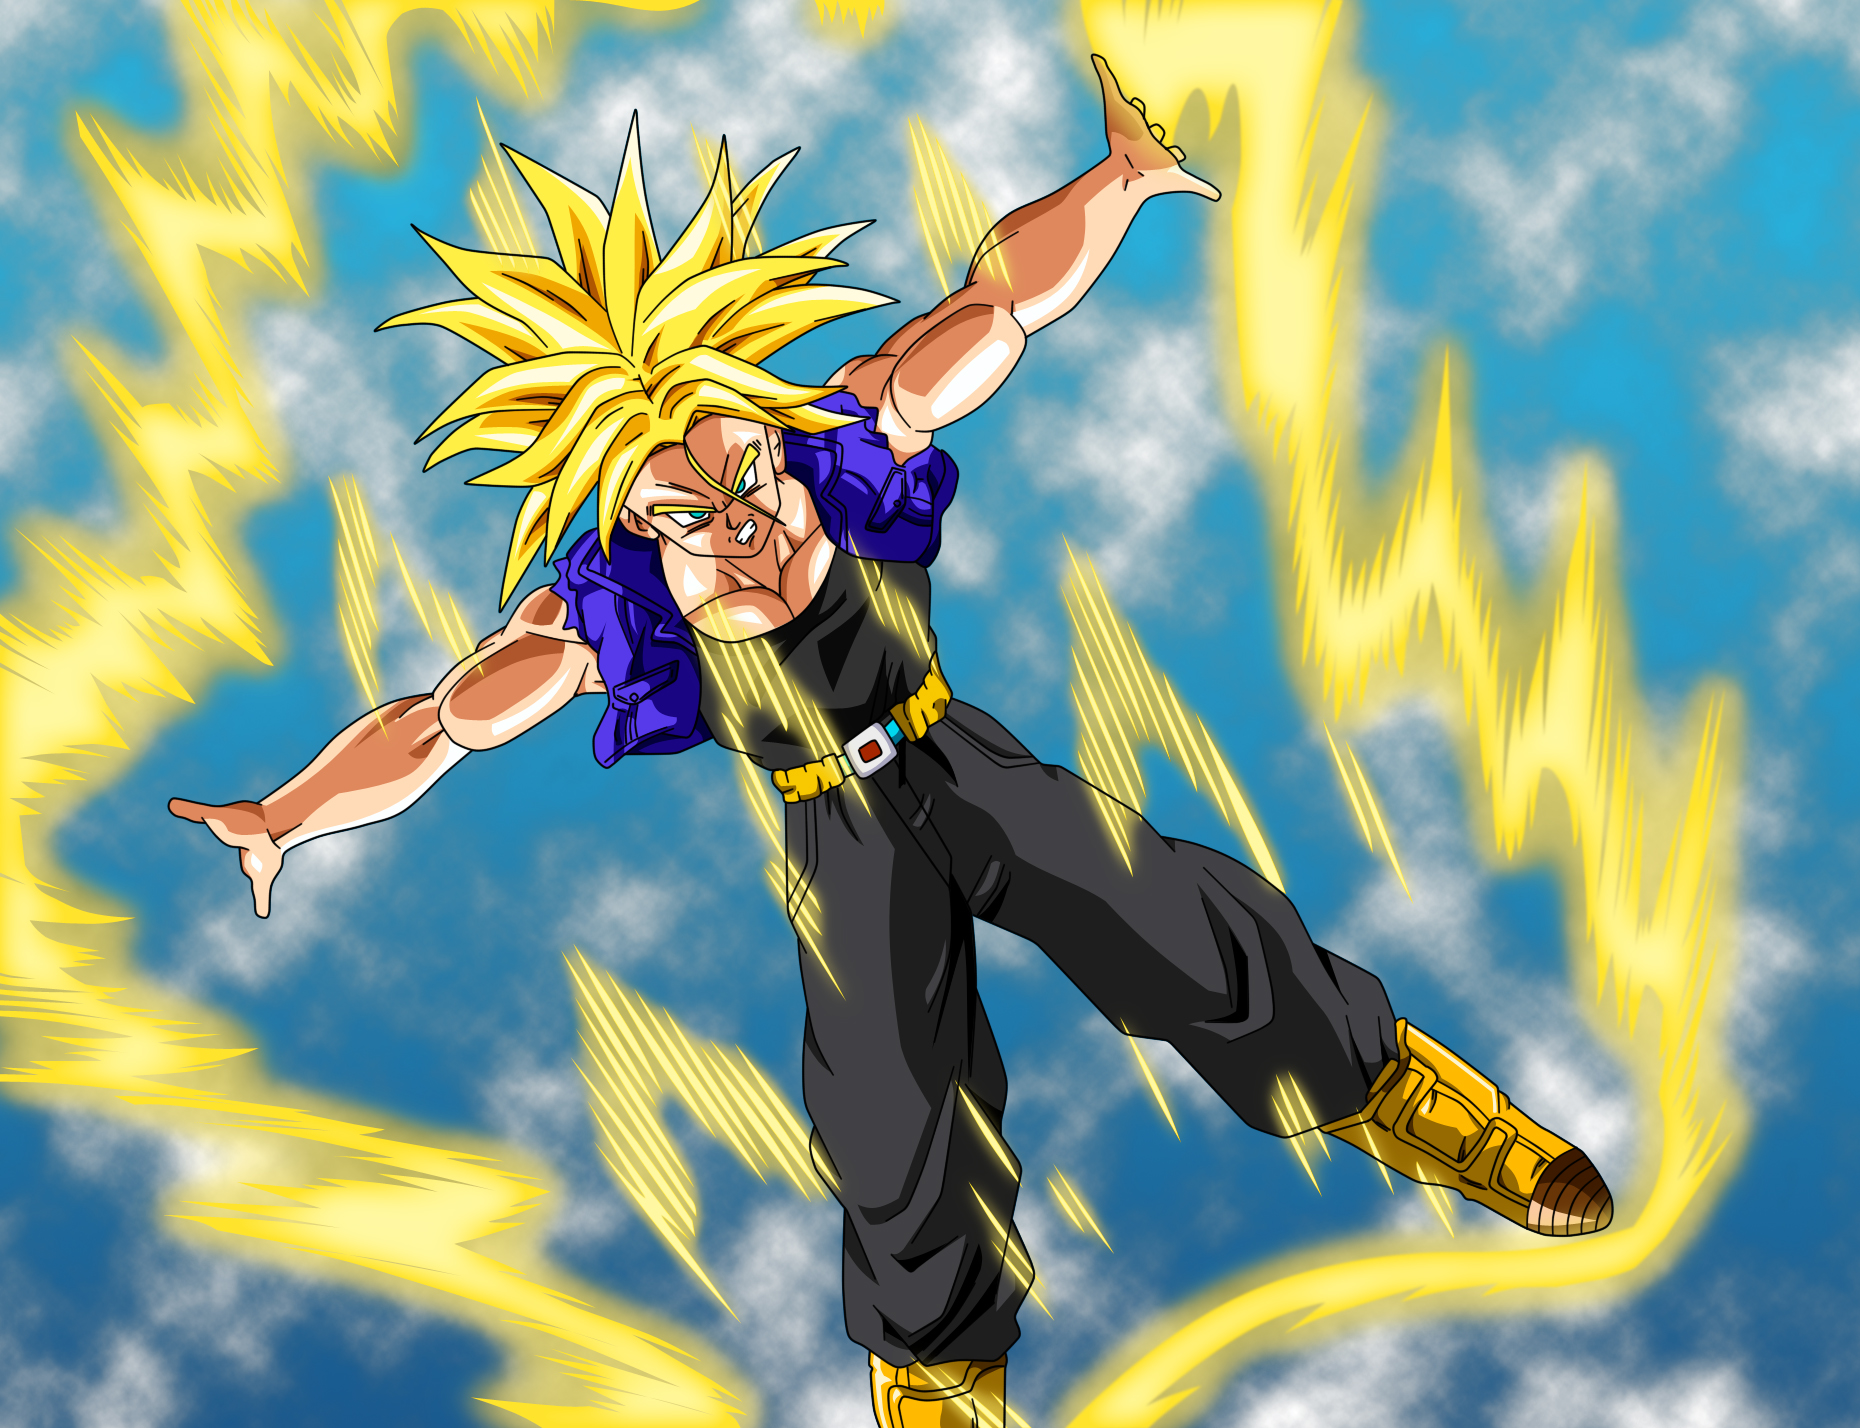 SSJ Trunks, Bojack Unbound by BoScha196 on DeviantArt